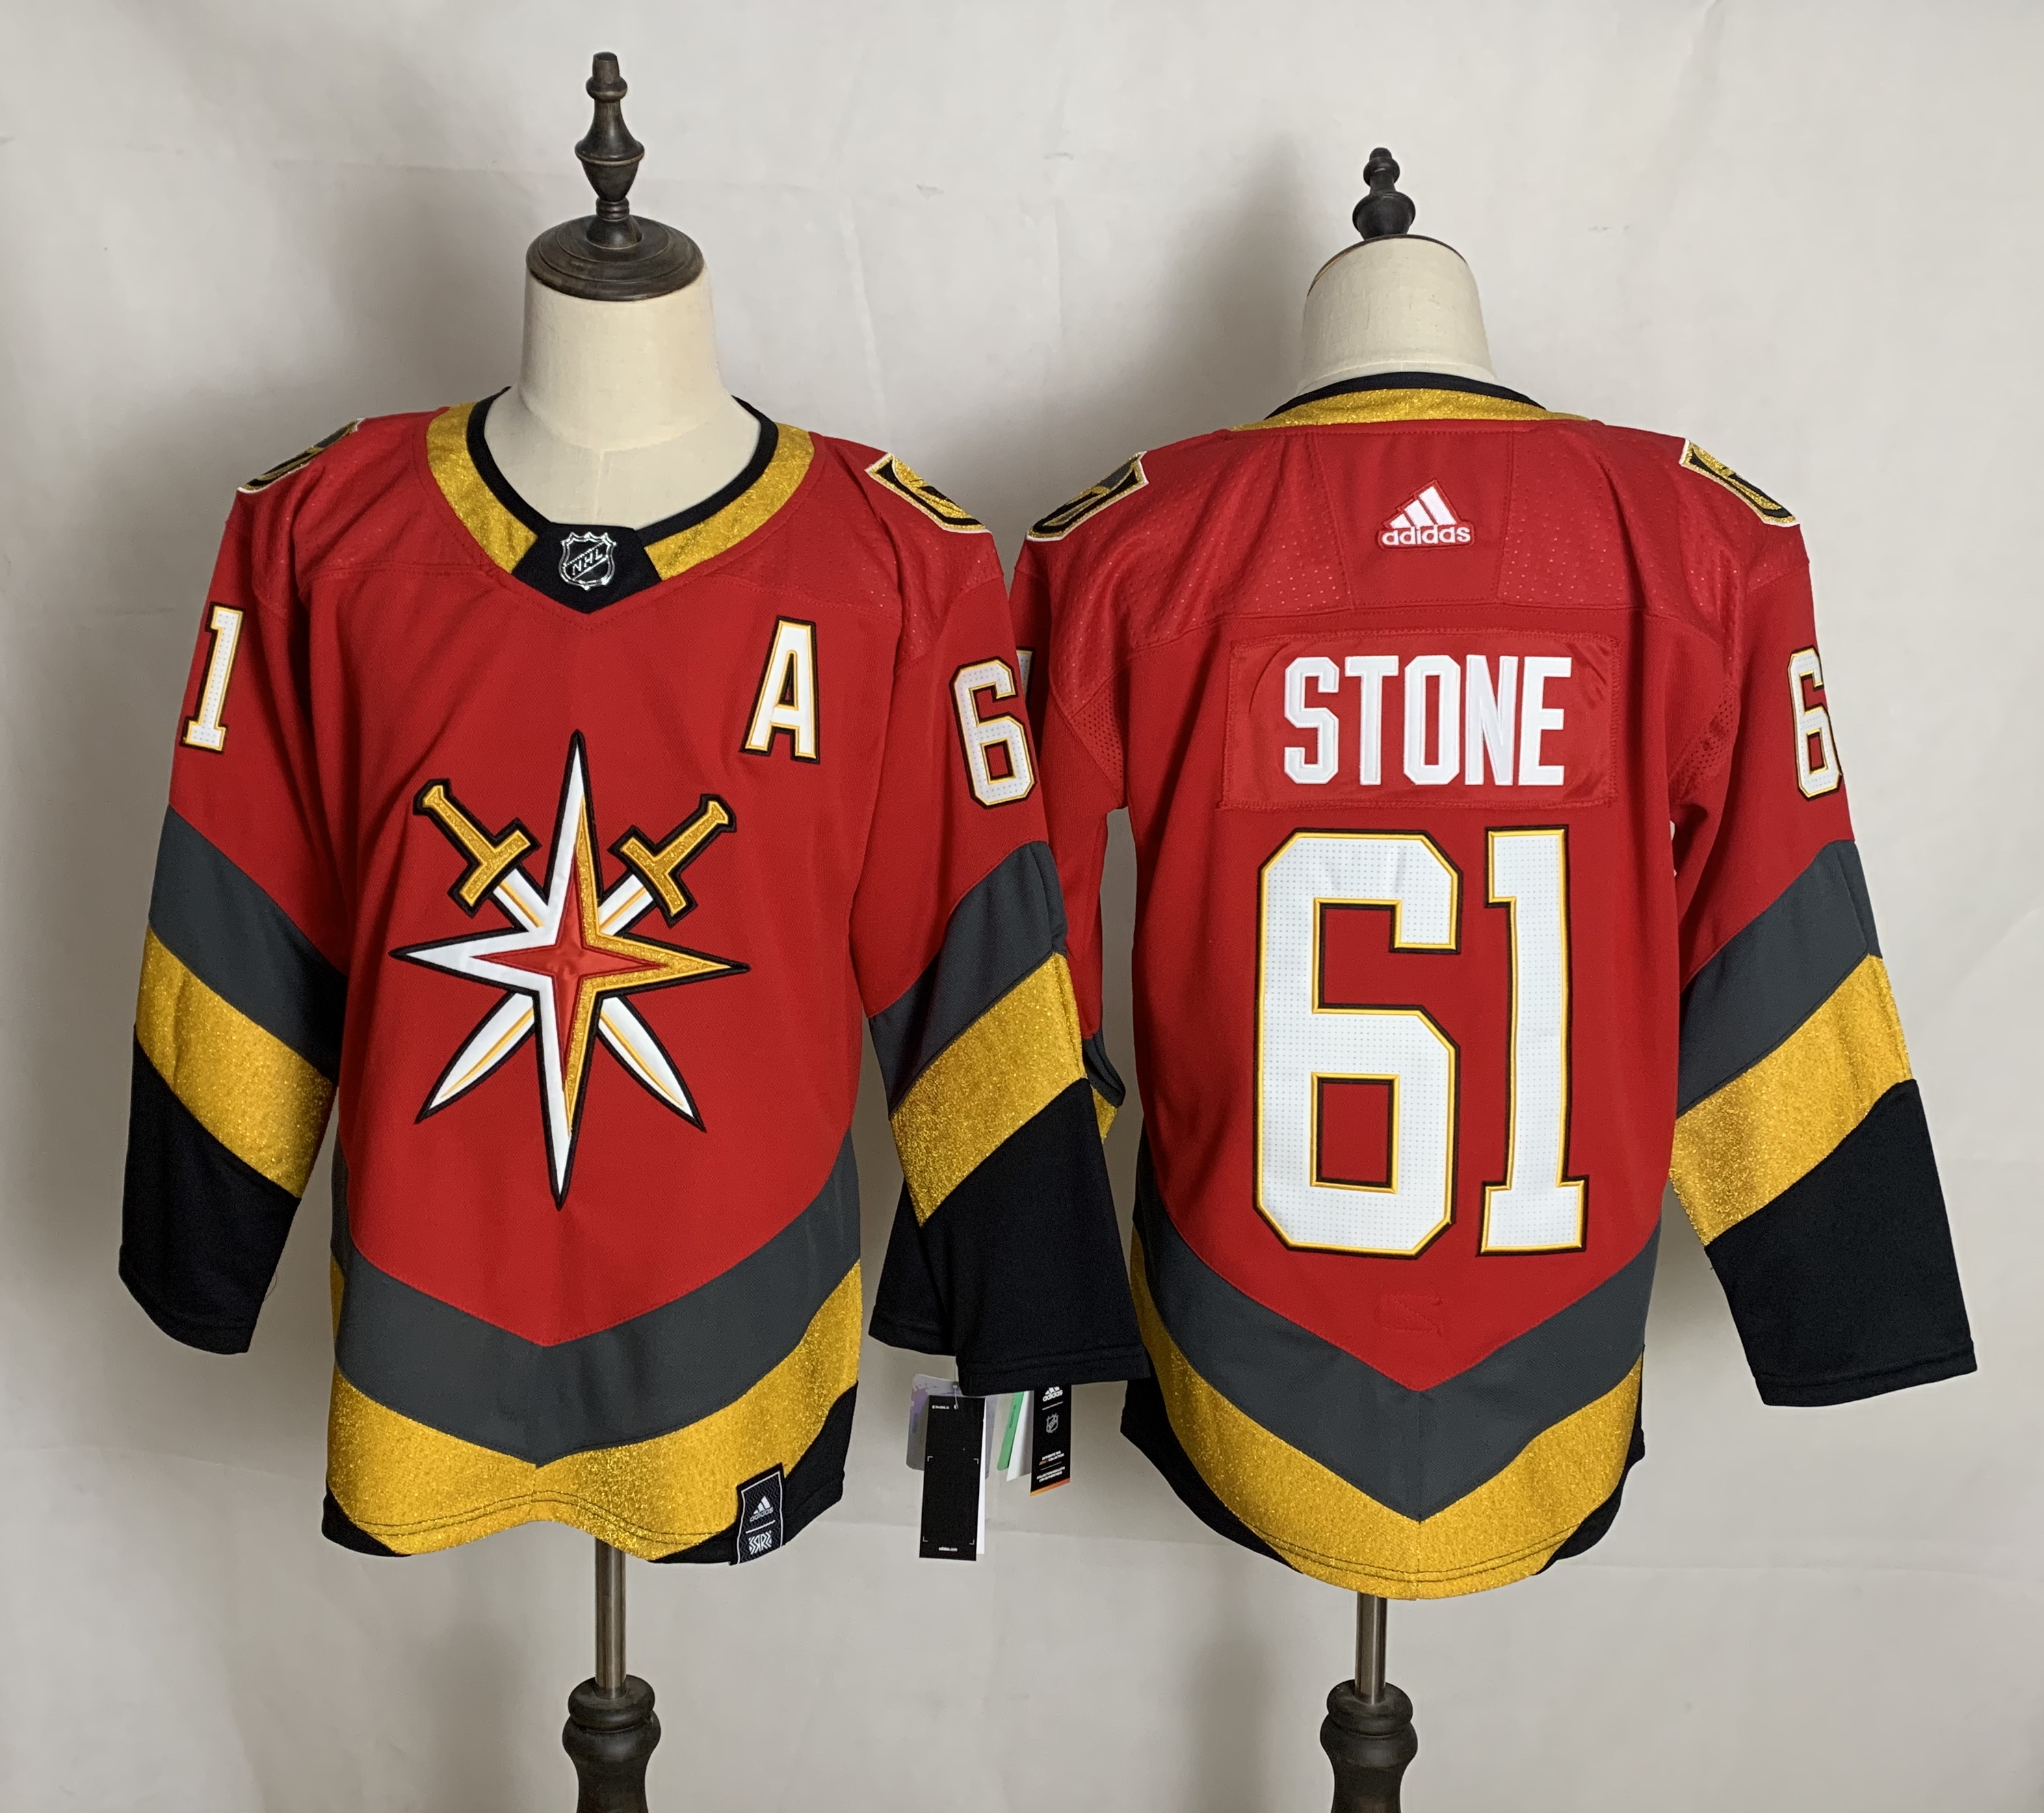 Men's Vegas Golden Knights #61 Mark Stone Red Adidas 2020-21 Alternate Authentic Player NHL Jersey